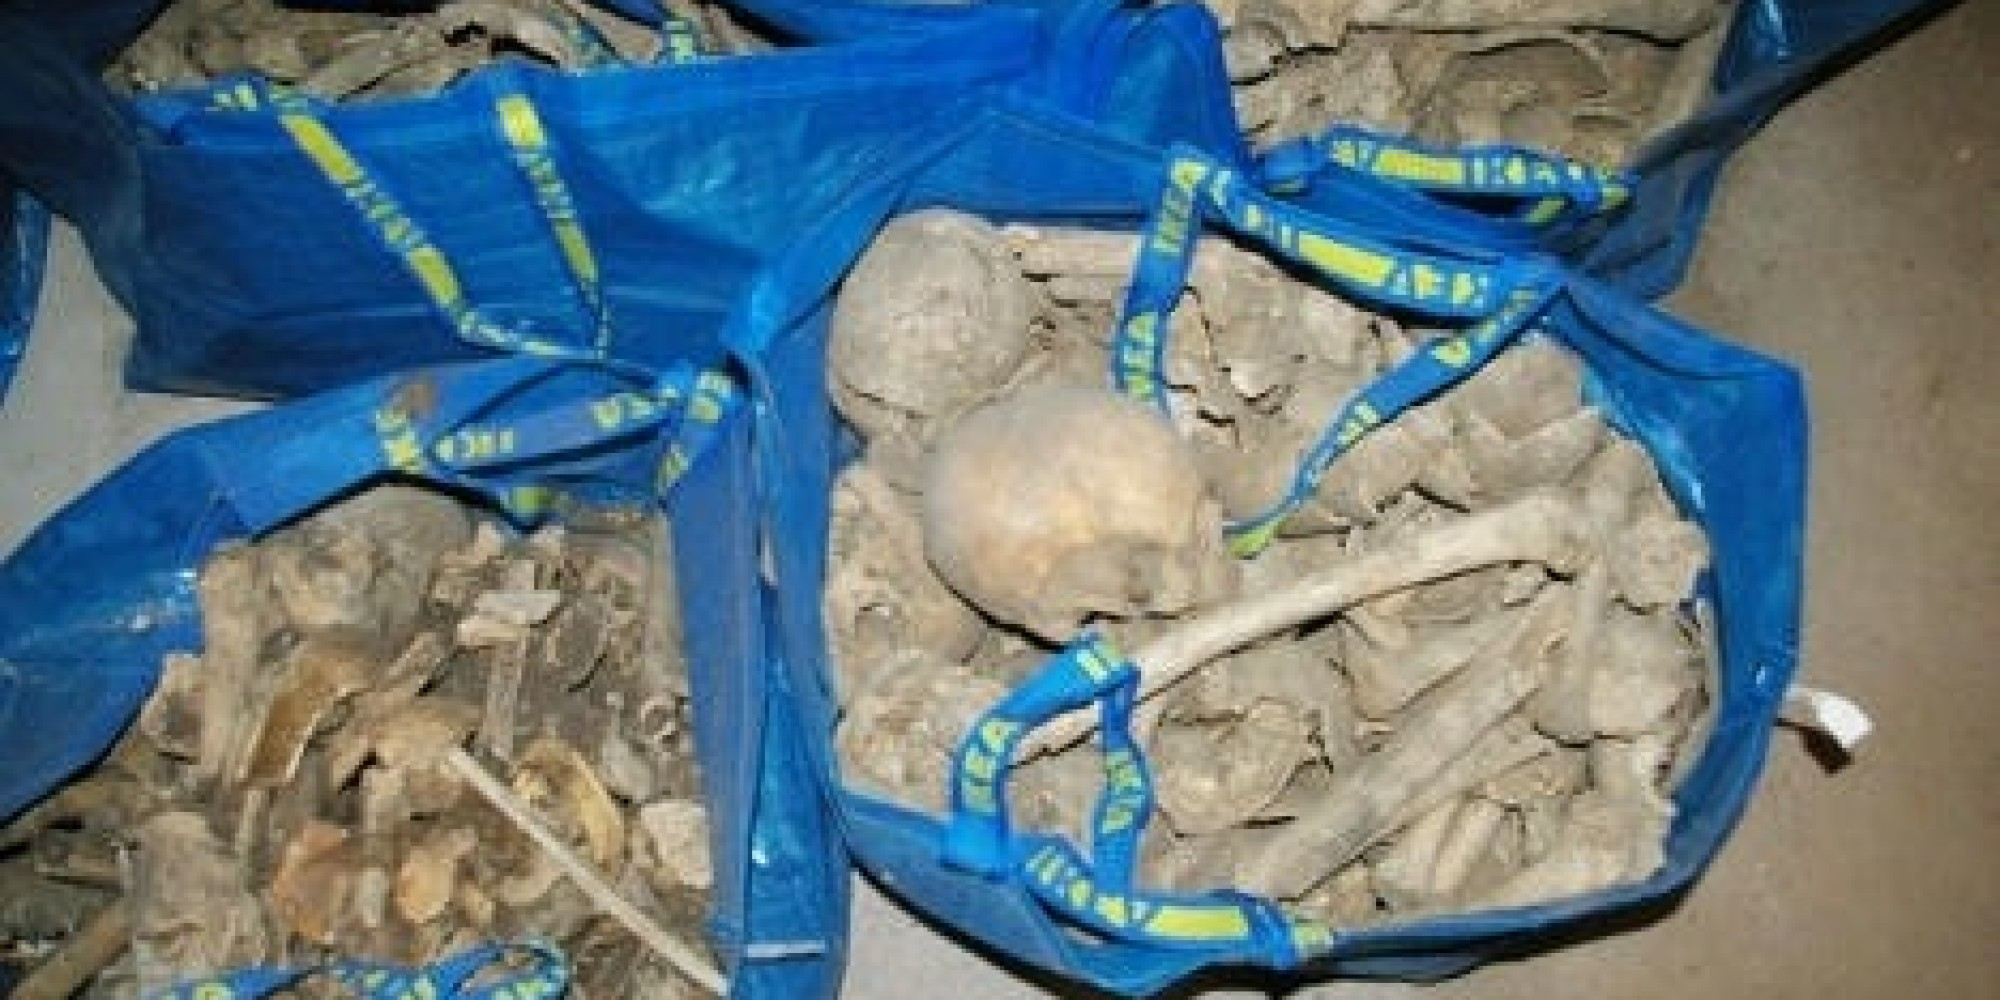 woman finds ikea bags filled with human bones huffpost. Black Bedroom Furniture Sets. Home Design Ideas